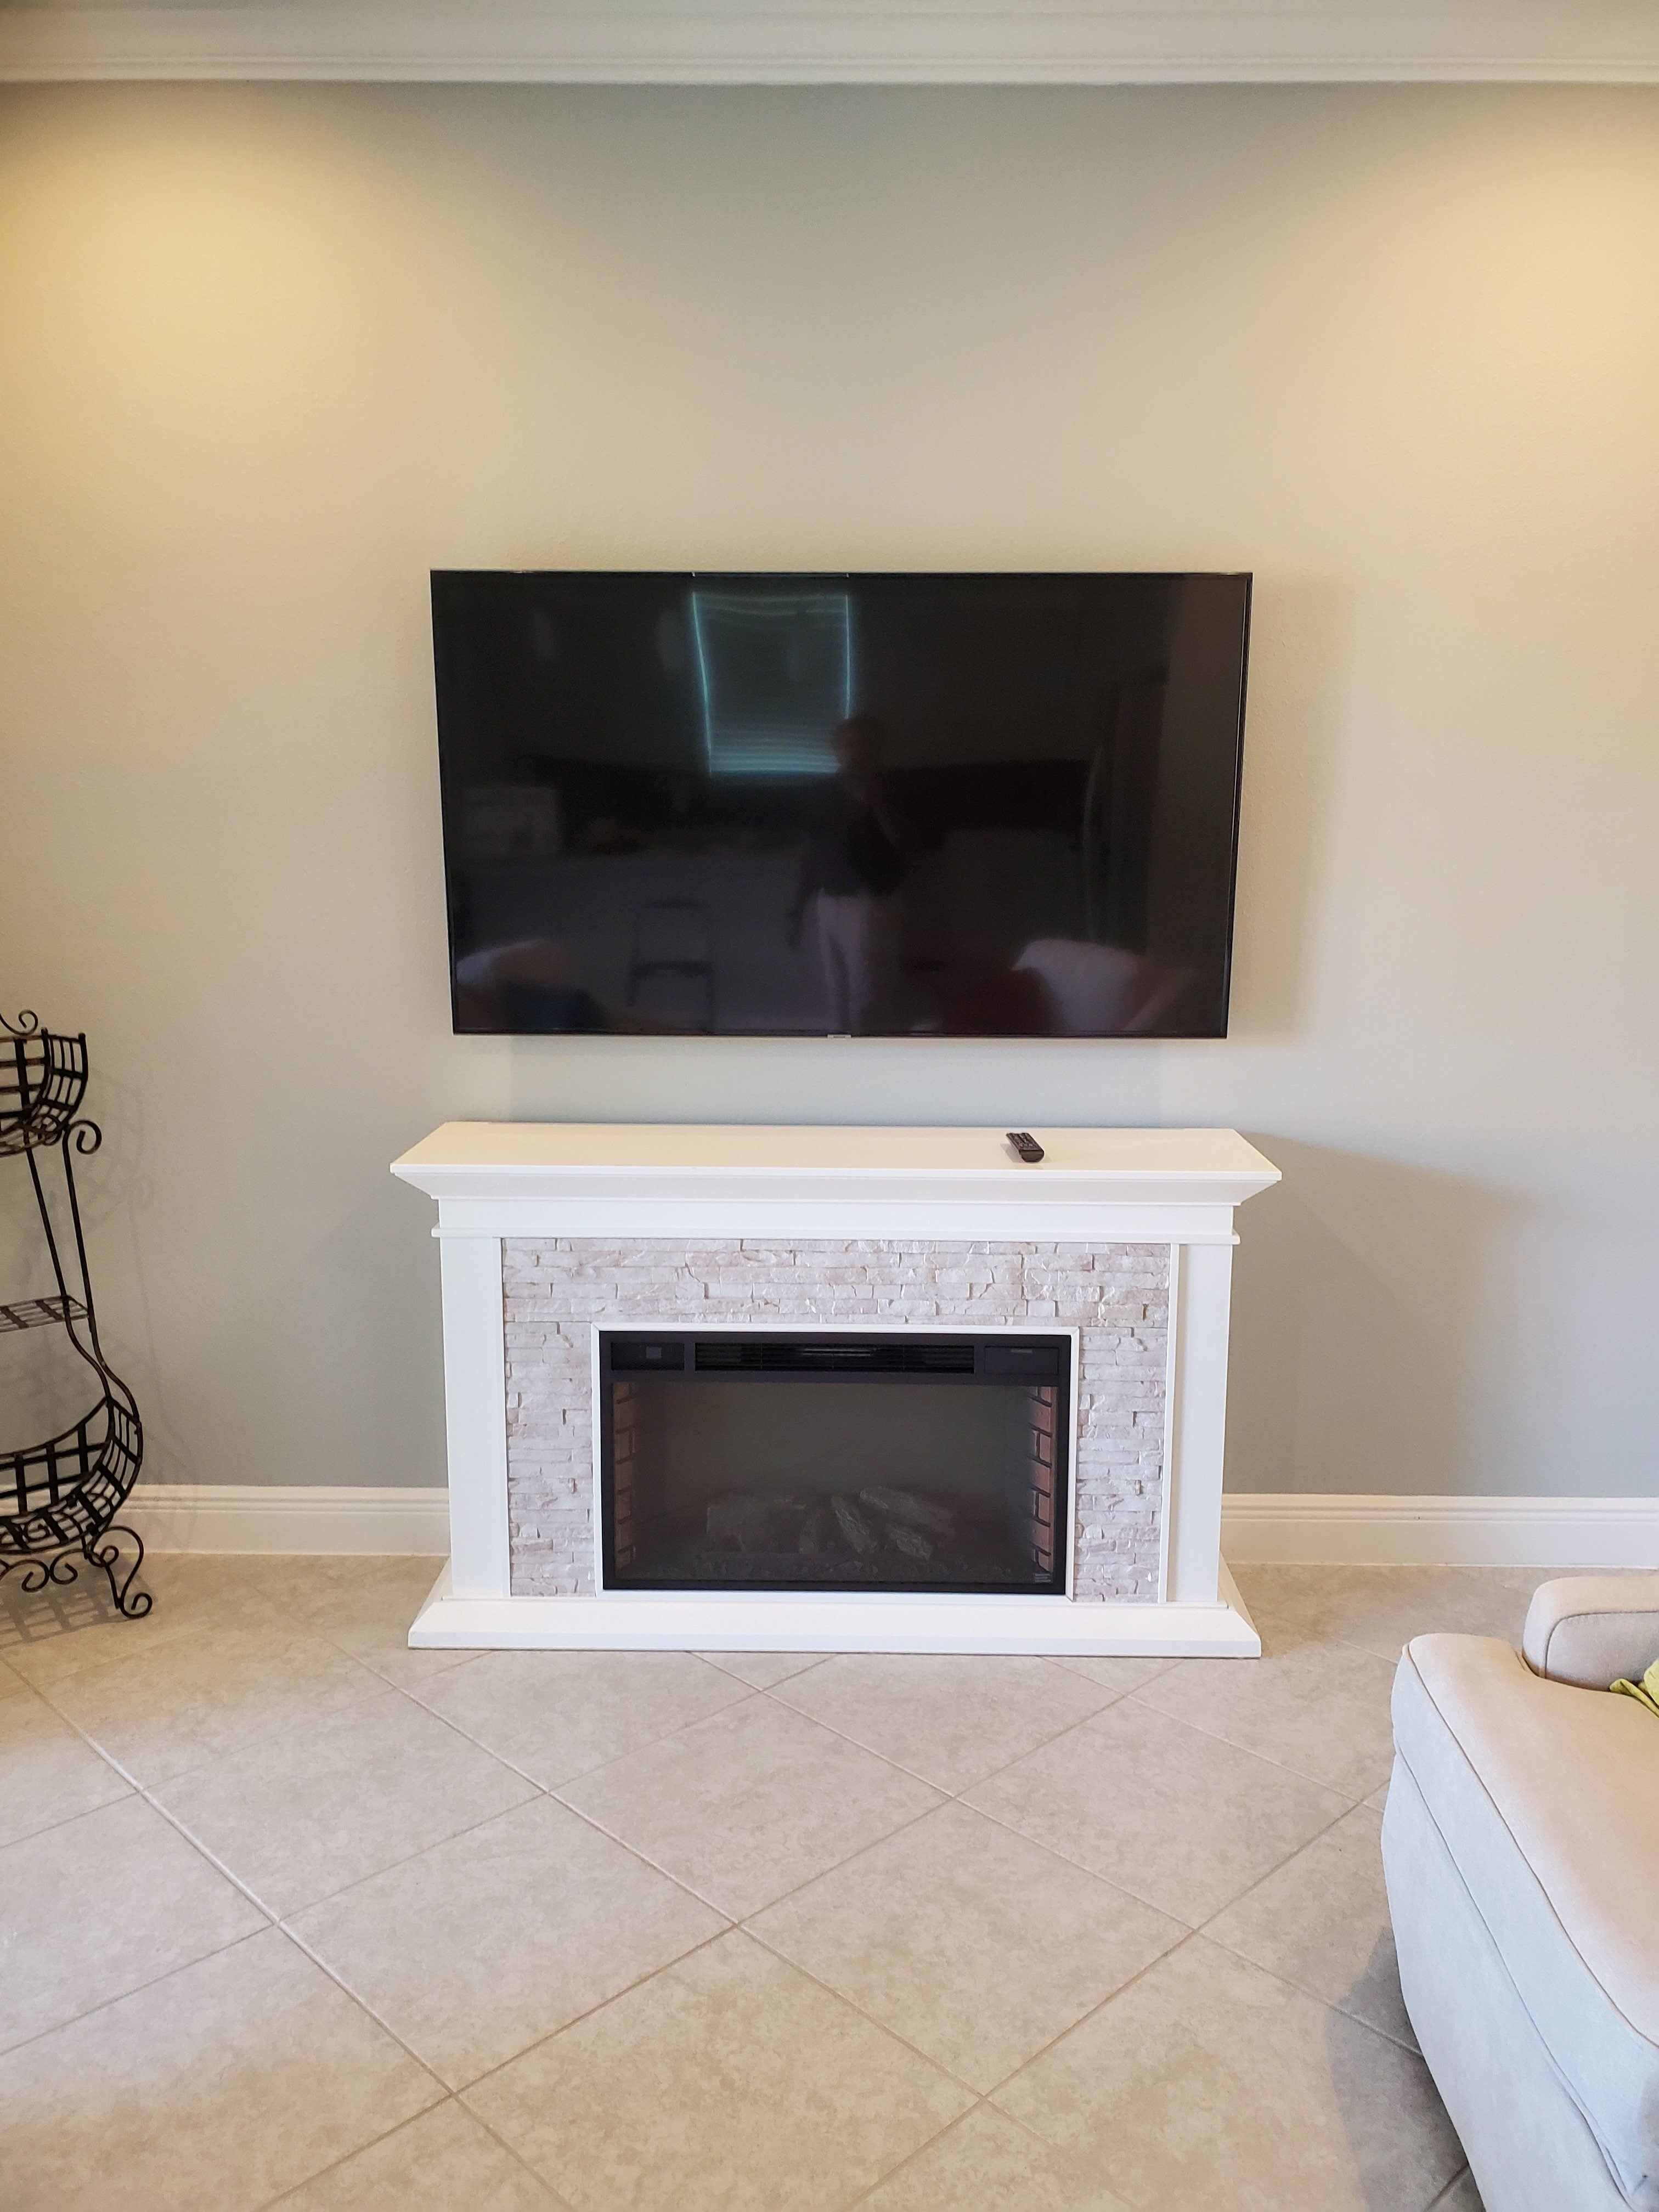 Protect Your New TV - Professional TV Mountings